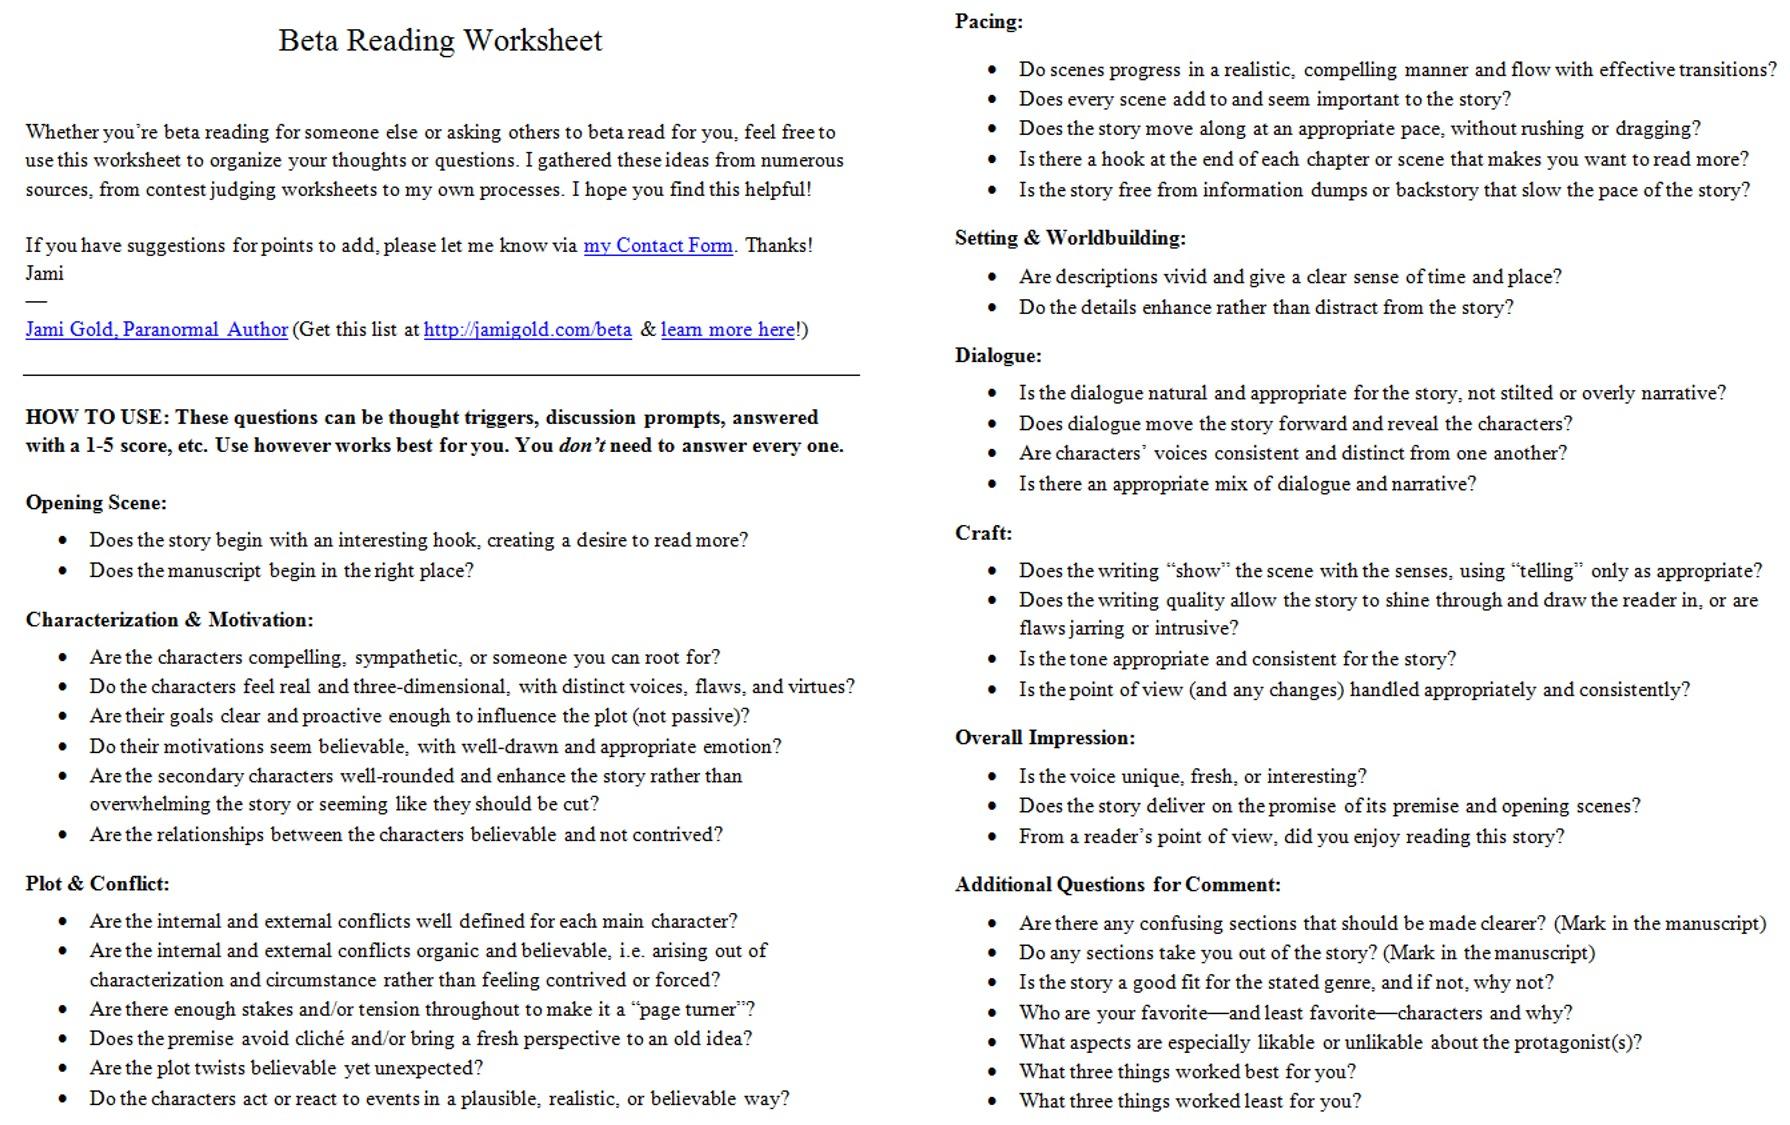 Aldiablosus  Pleasant Worksheets For Writers  Jami Gold Paranormal Author With Licious Screen Shot Of The Twopage Beta Reading Worksheet With Endearing Sequencing Math Worksheets Also Worksheets On Colors In Addition Maths Worksheets Grade  And Plotting Linear Graphs Worksheet As Well As Canadian Government Worksheets Additionally Esl Free Printable Worksheets From Jamigoldcom With Aldiablosus  Licious Worksheets For Writers  Jami Gold Paranormal Author With Endearing Screen Shot Of The Twopage Beta Reading Worksheet And Pleasant Sequencing Math Worksheets Also Worksheets On Colors In Addition Maths Worksheets Grade  From Jamigoldcom